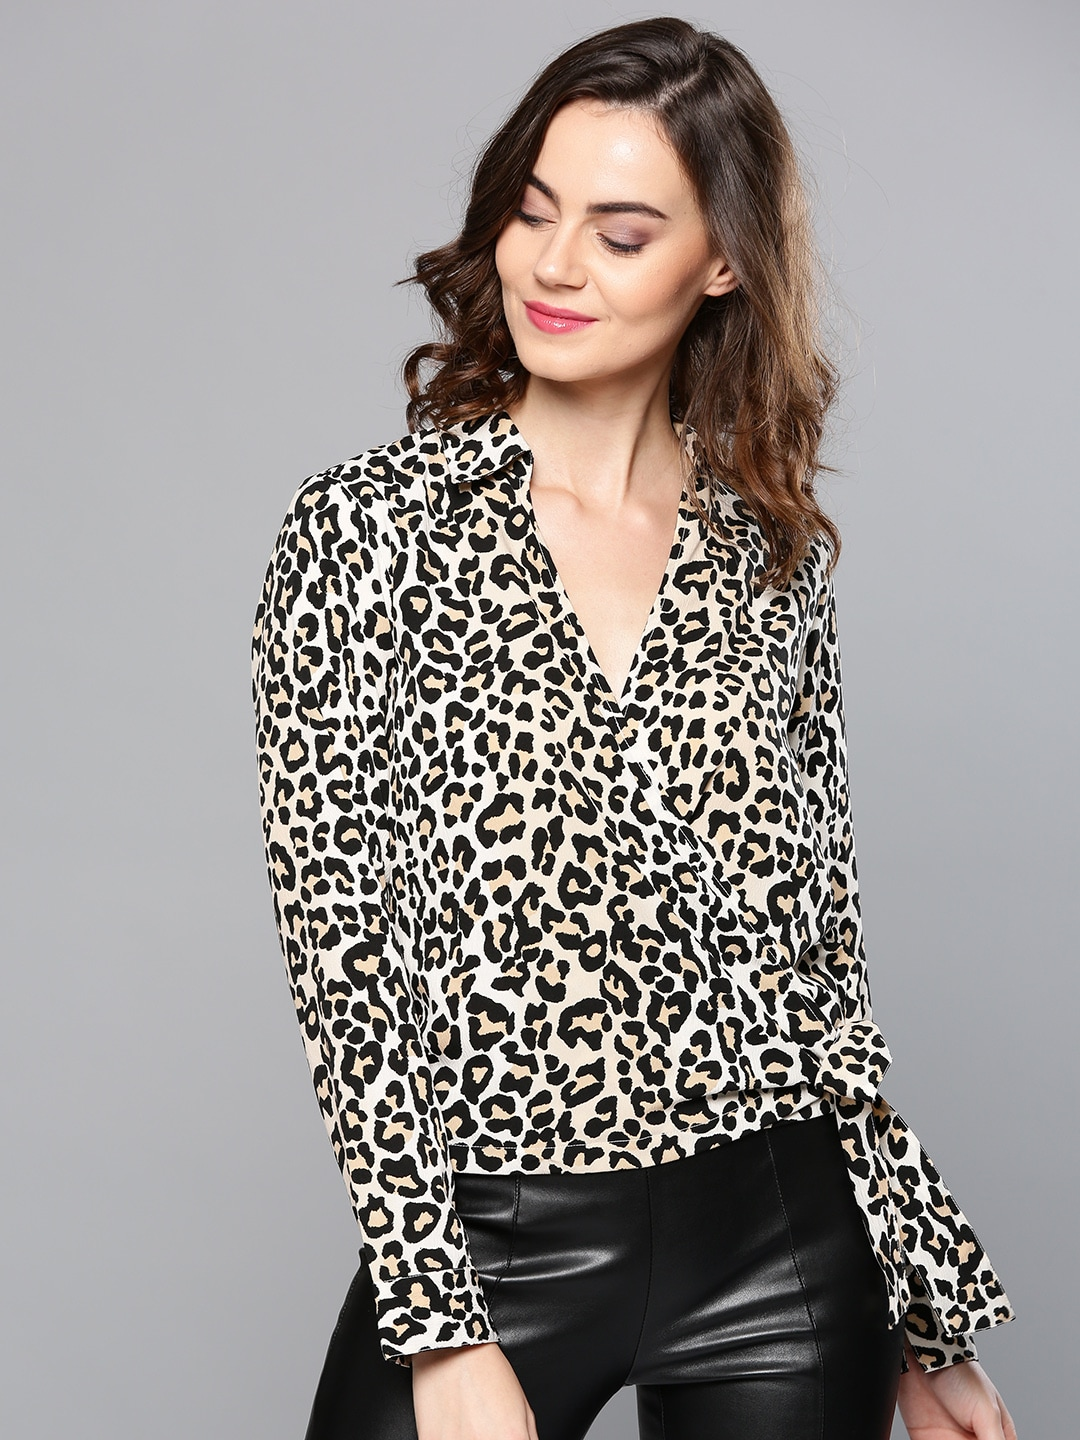 cfc21ee20ee60 Animal Print Tops For Women - Buy Animal Print Tops For Women online in  India